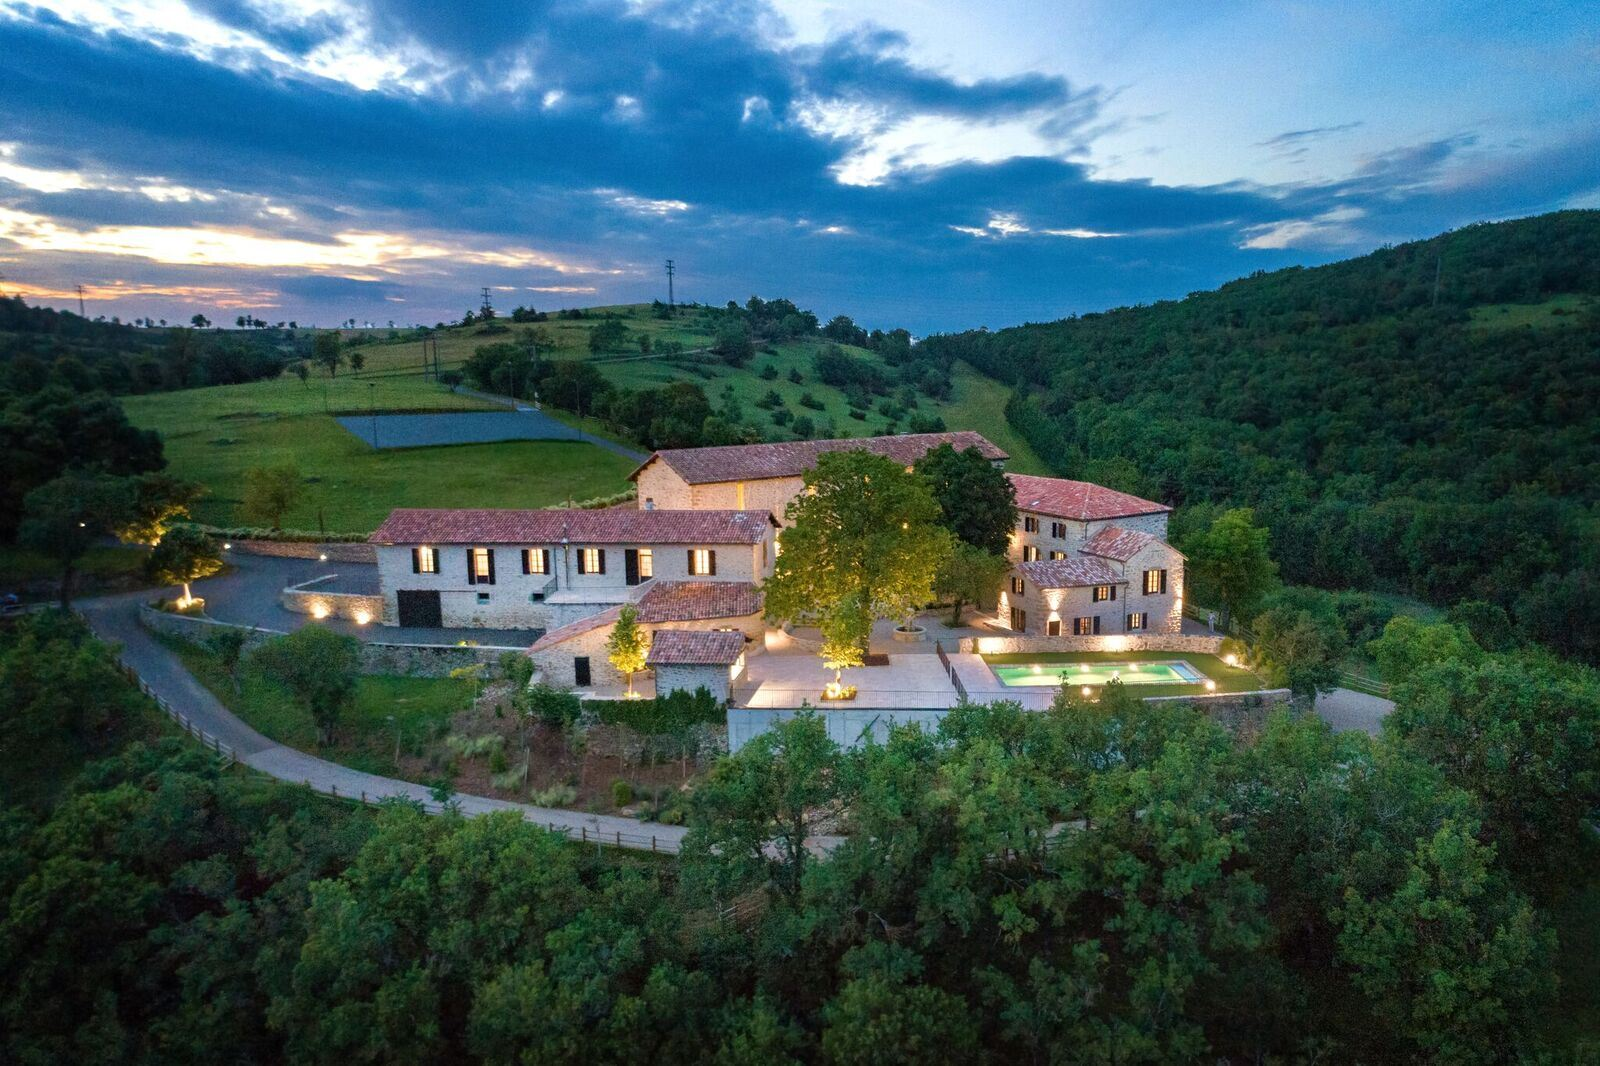 Single Family Homes for Sale at AVEYRON - 160 SQ M PROPERTY Other Midi Pyrenees, Midi Pyrenees 12400 France